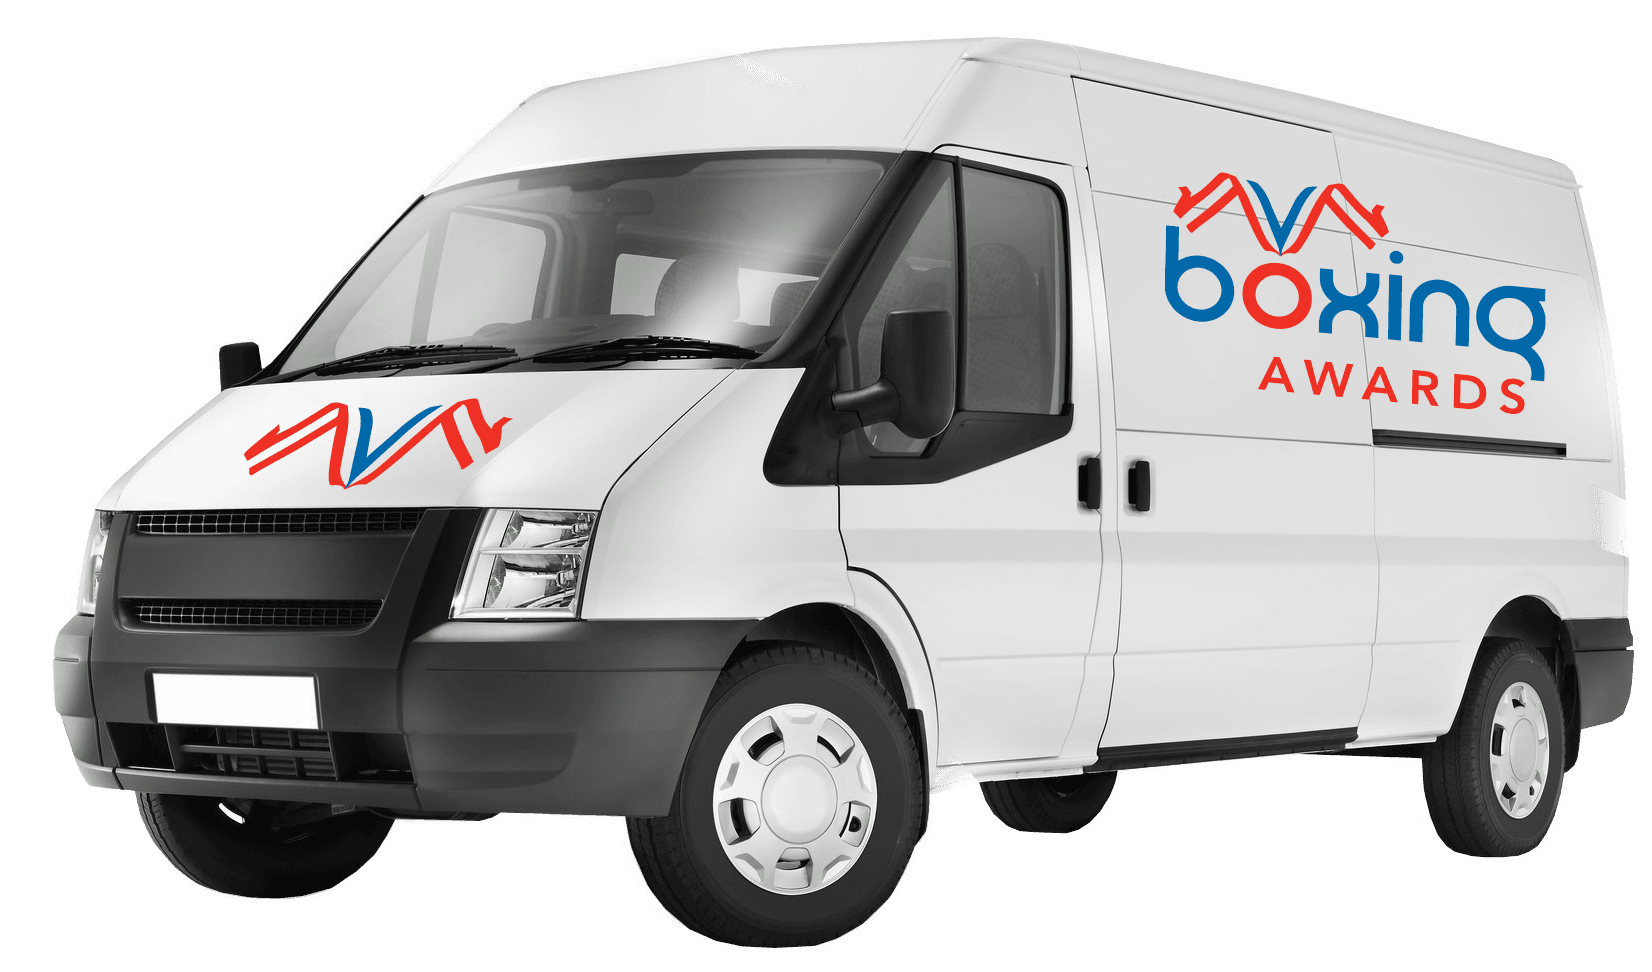 Boxing Awards company van